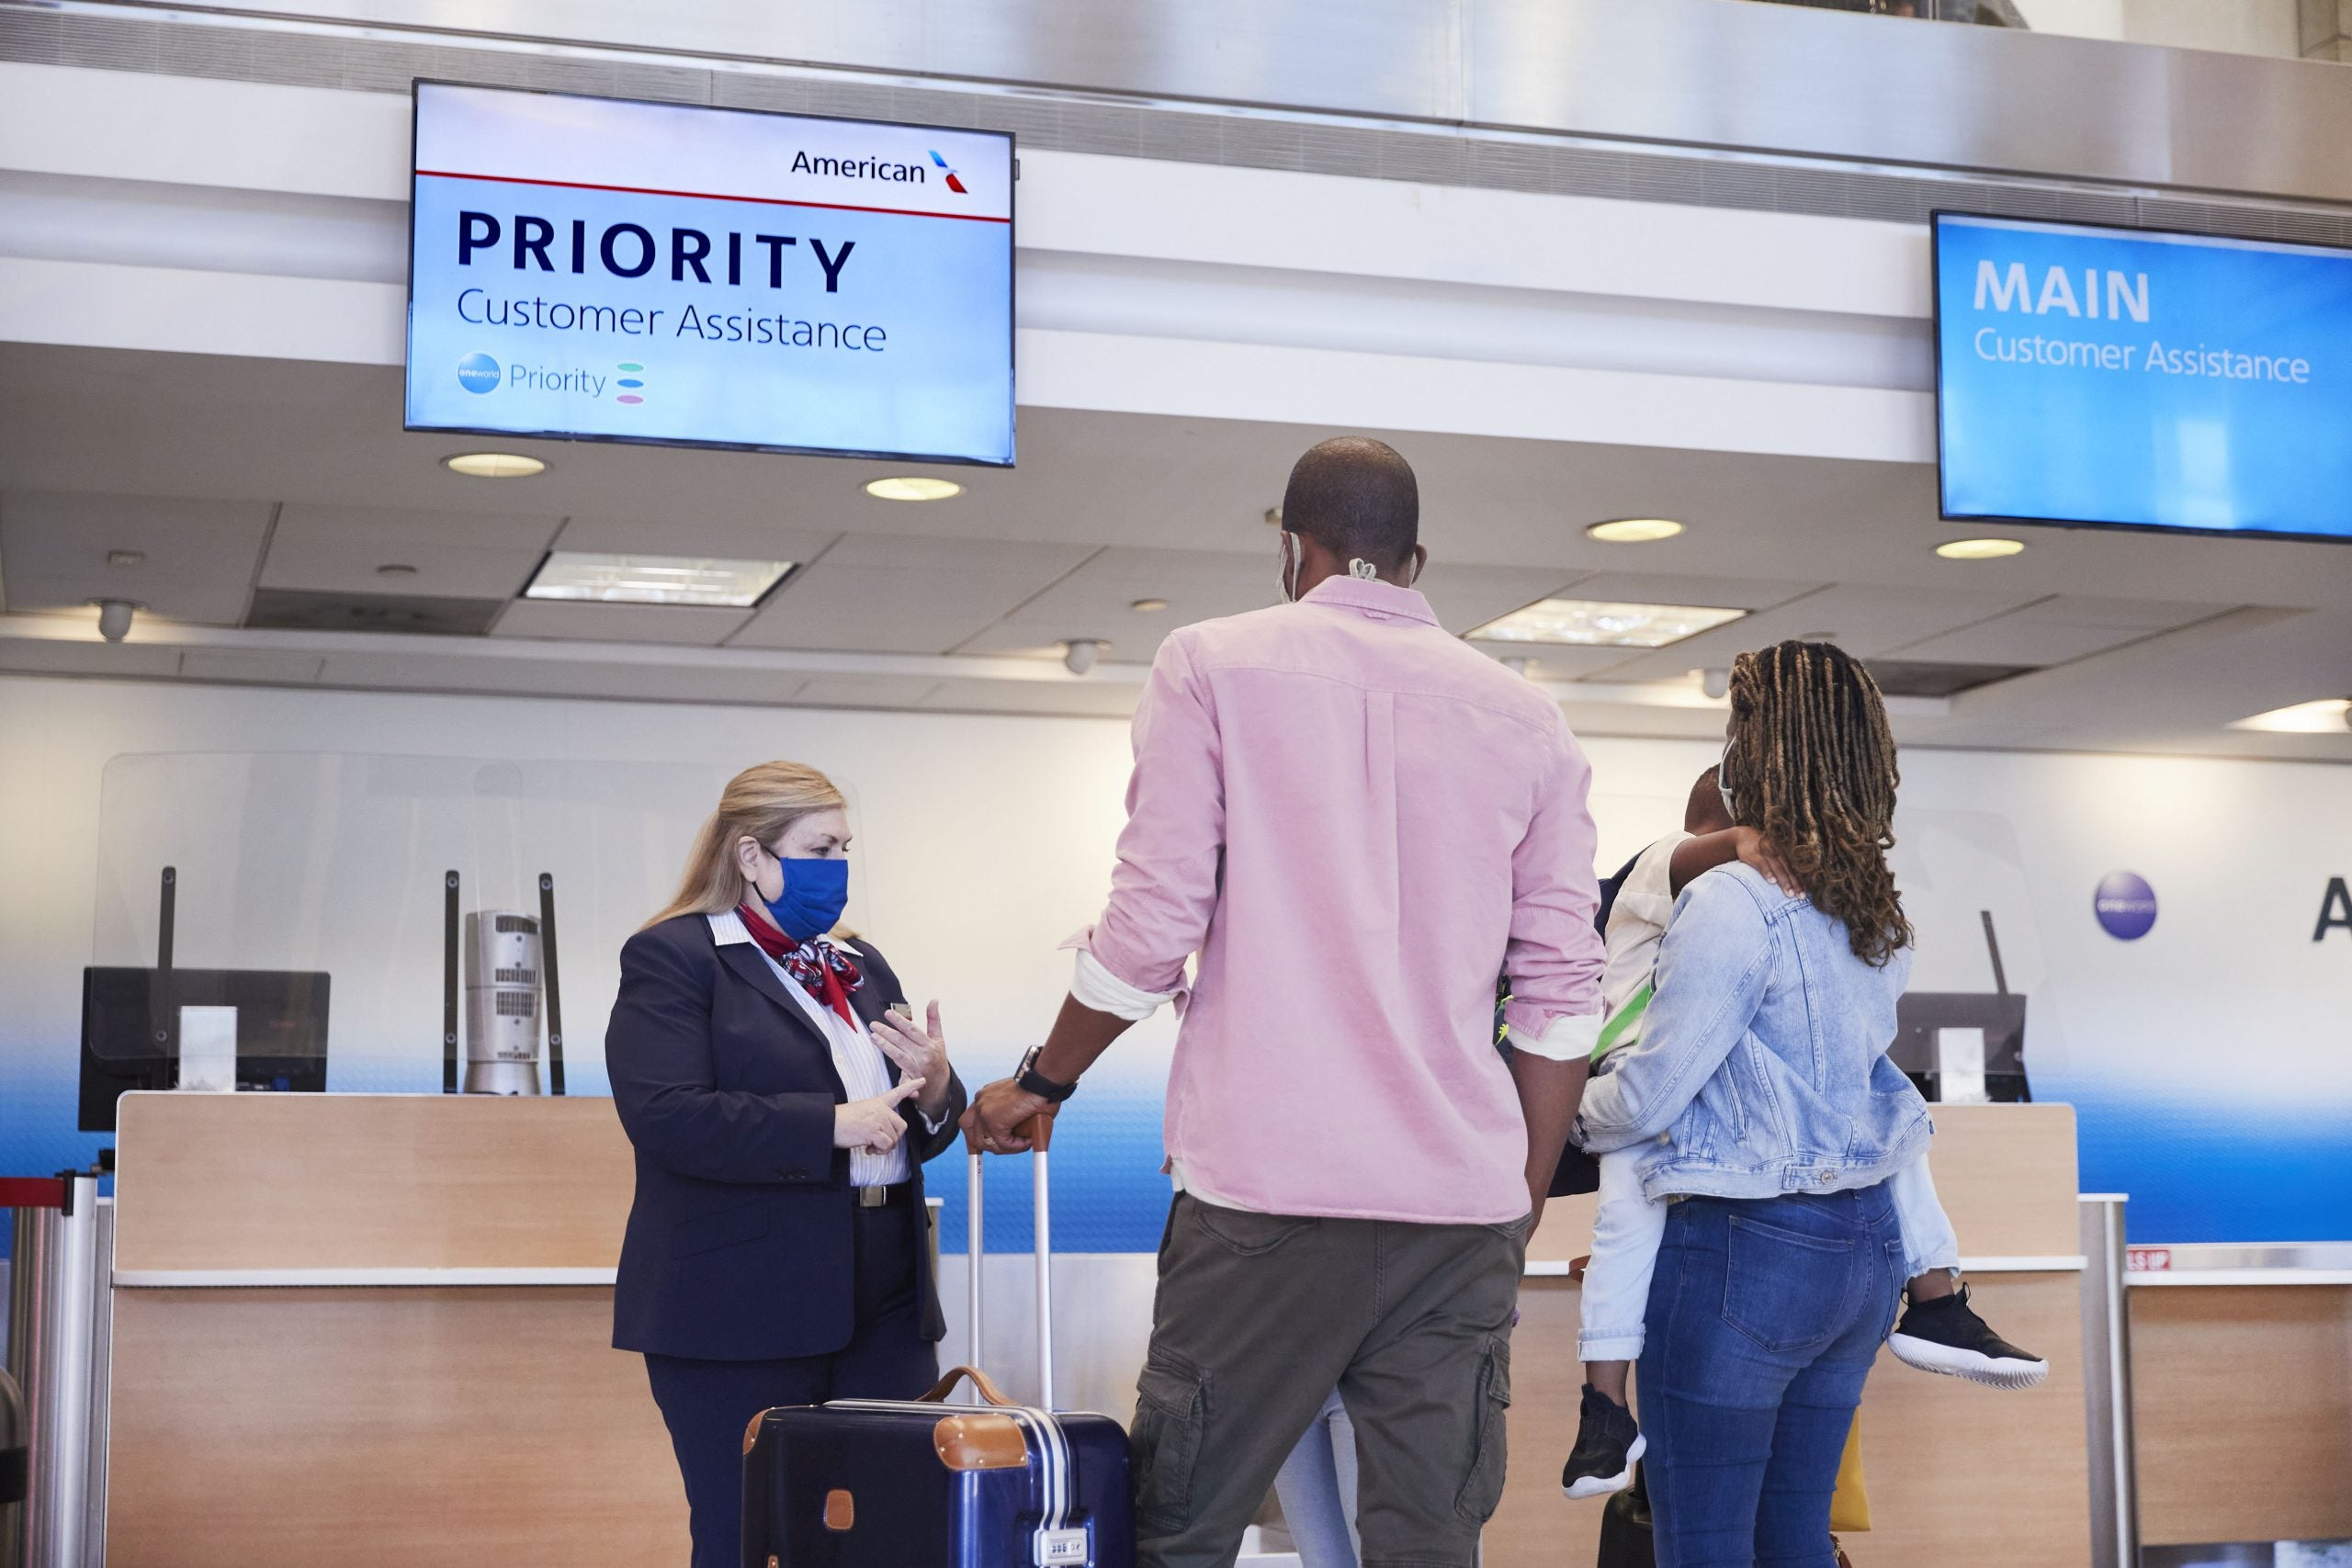 Last resort: Stuck on hold trying to reach your airline? Head to the airport.